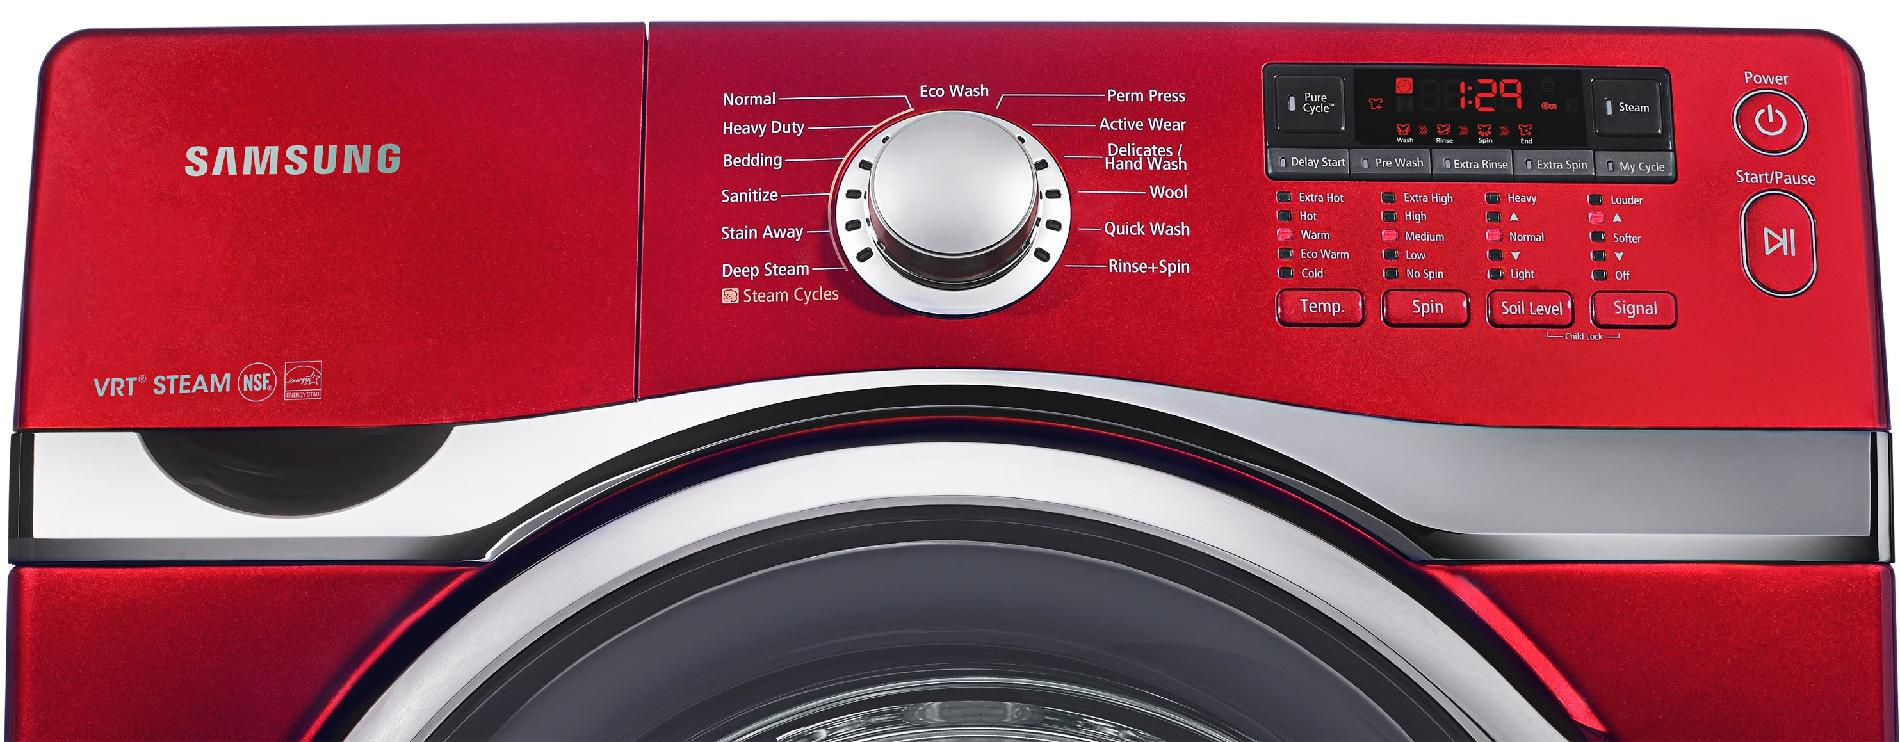 Samsung 3.9 cu. ft. High-Efficiency Front-Load Washer - Tango Red